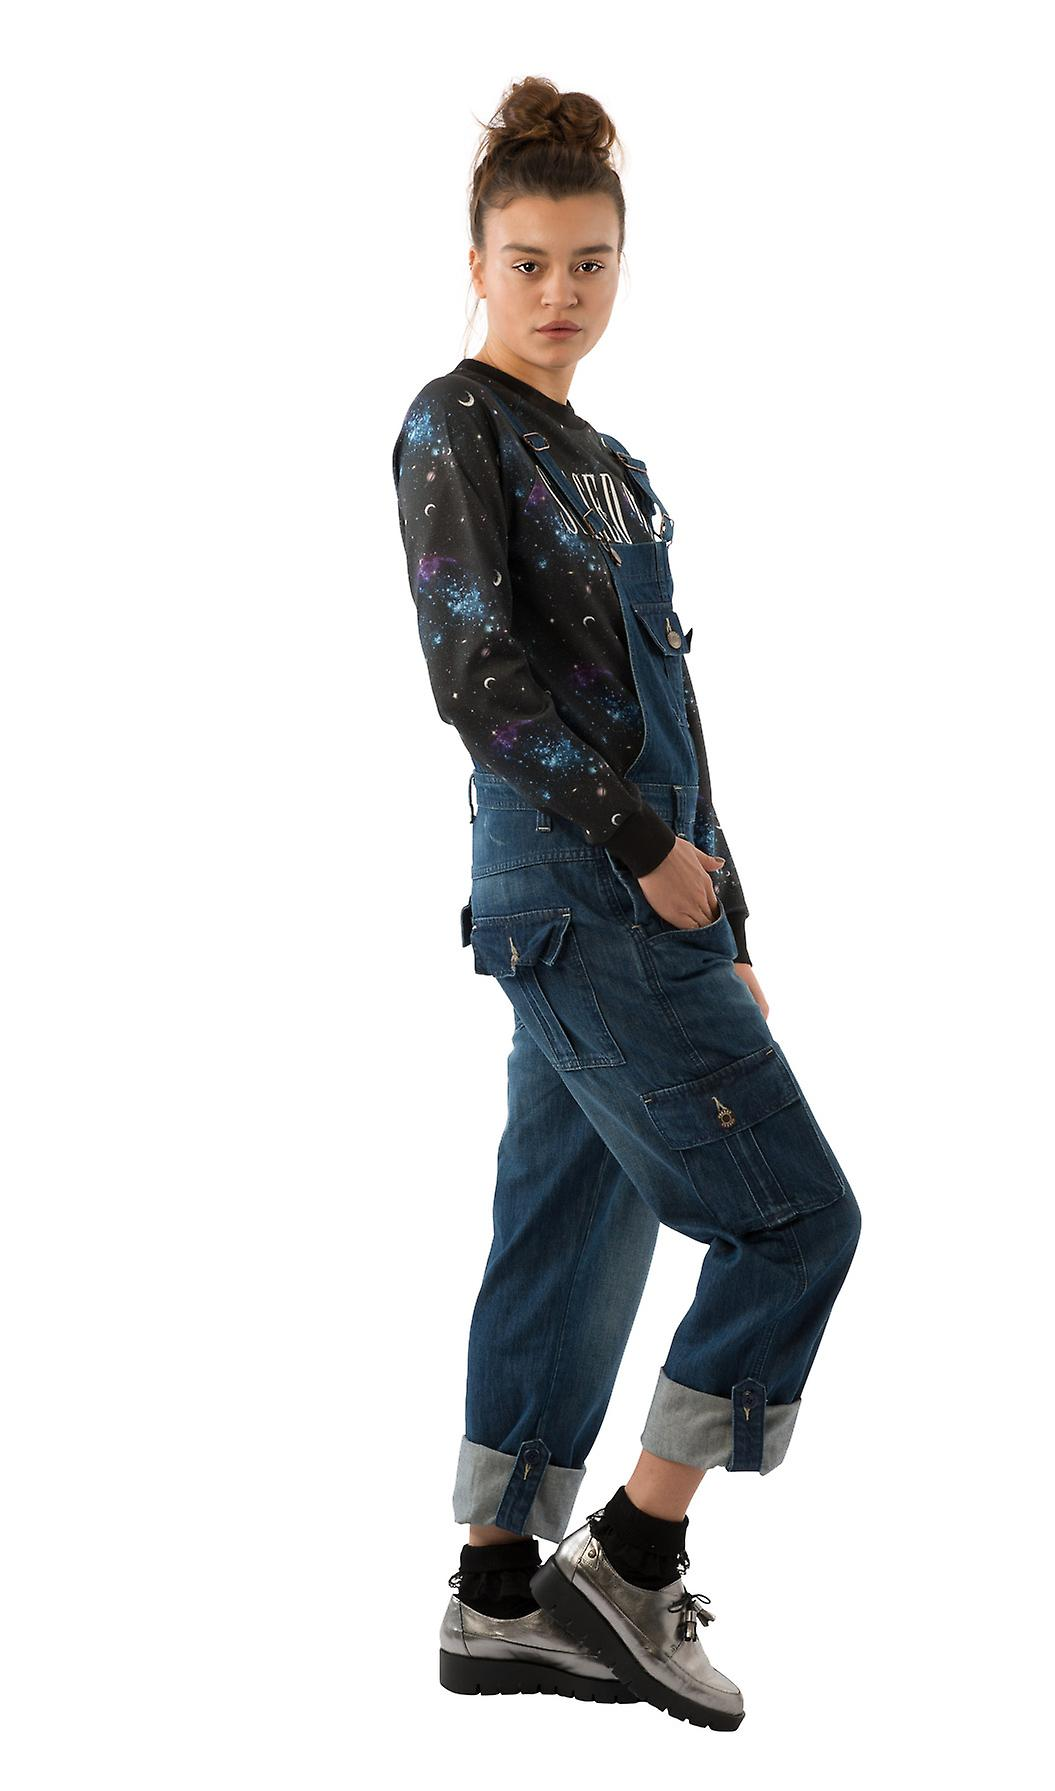 USKEES DAISY Women's Darkwash Dungarees relaxed fit Roll-up leg overalls